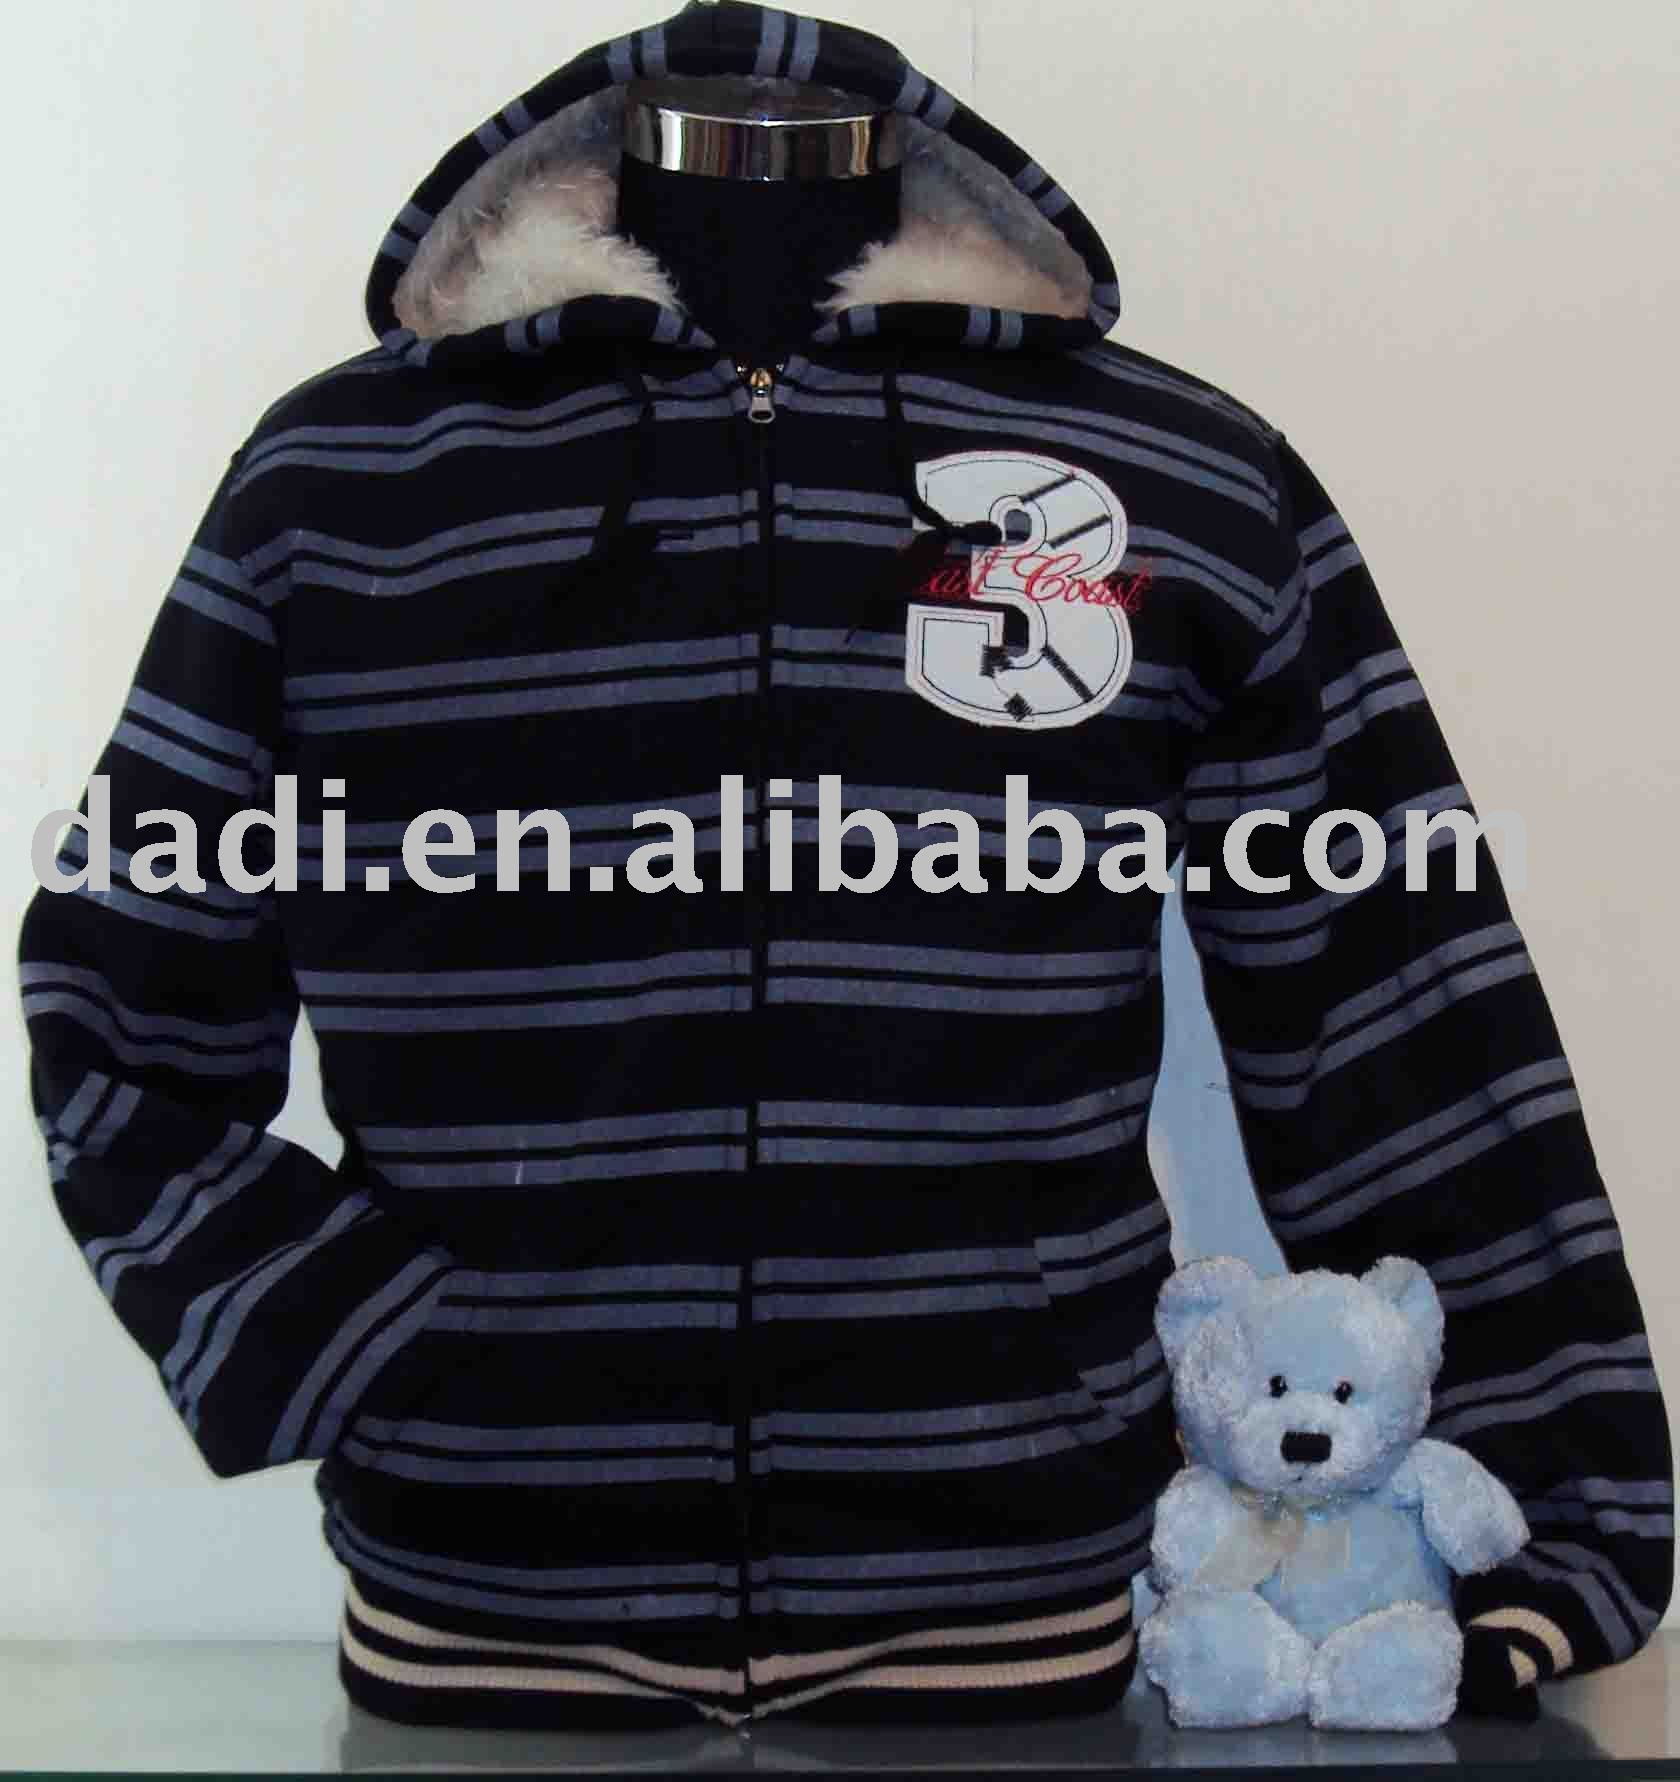 Japanese Down Coat, Japanese Down Coat Suppliers and Manufacturers ...